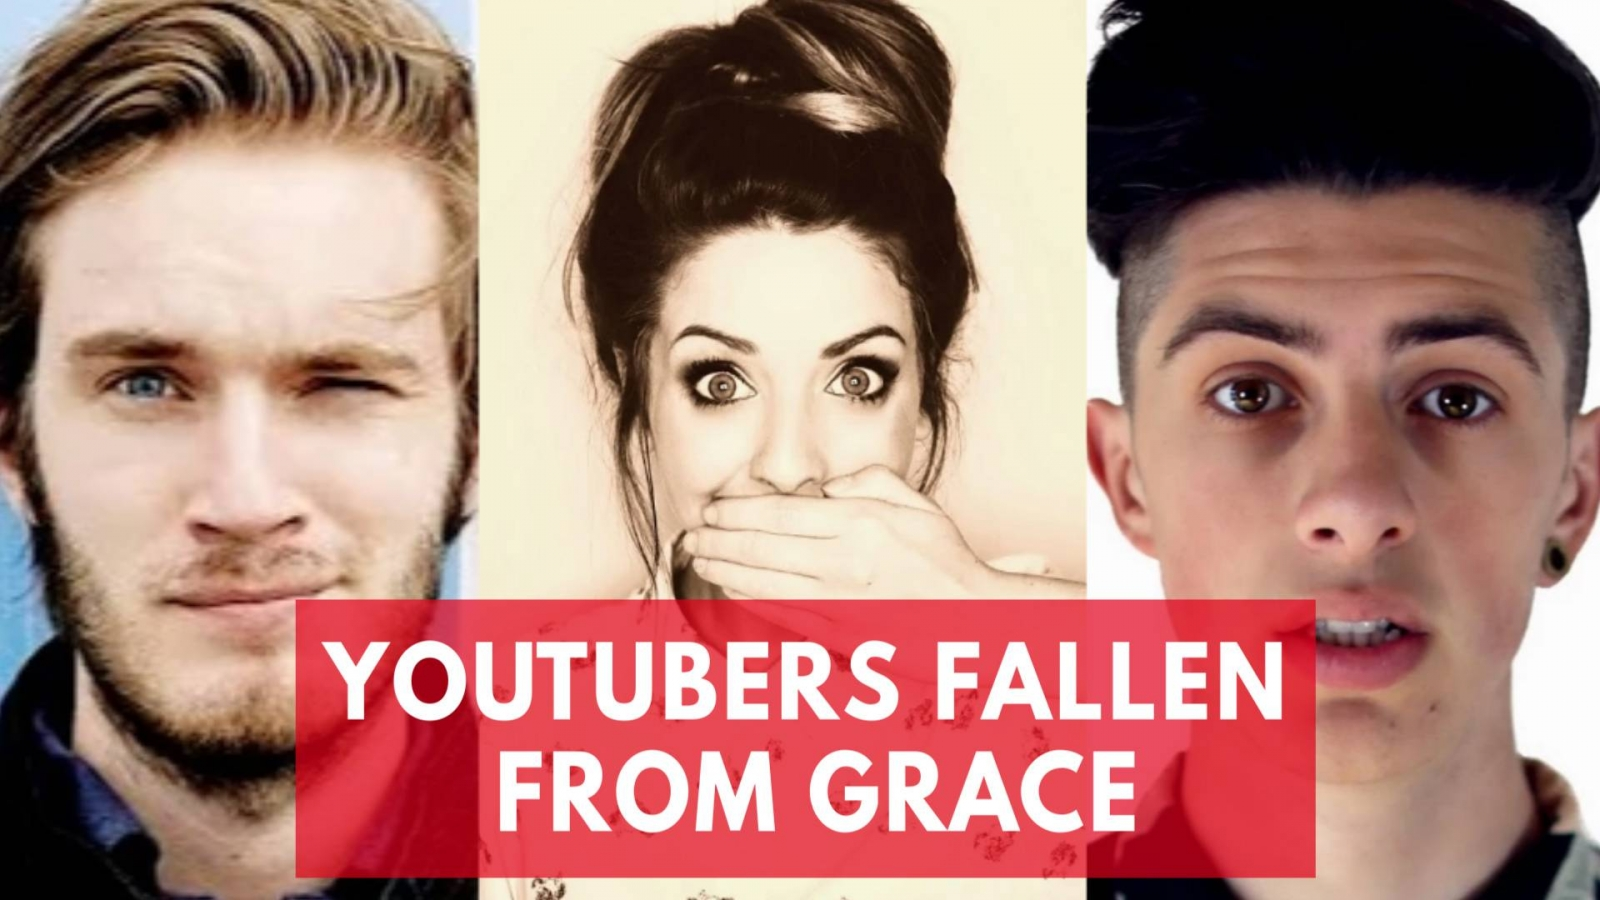 from-pewdiepie-to-logan-paul-the-most-disgraced-youtube-stars